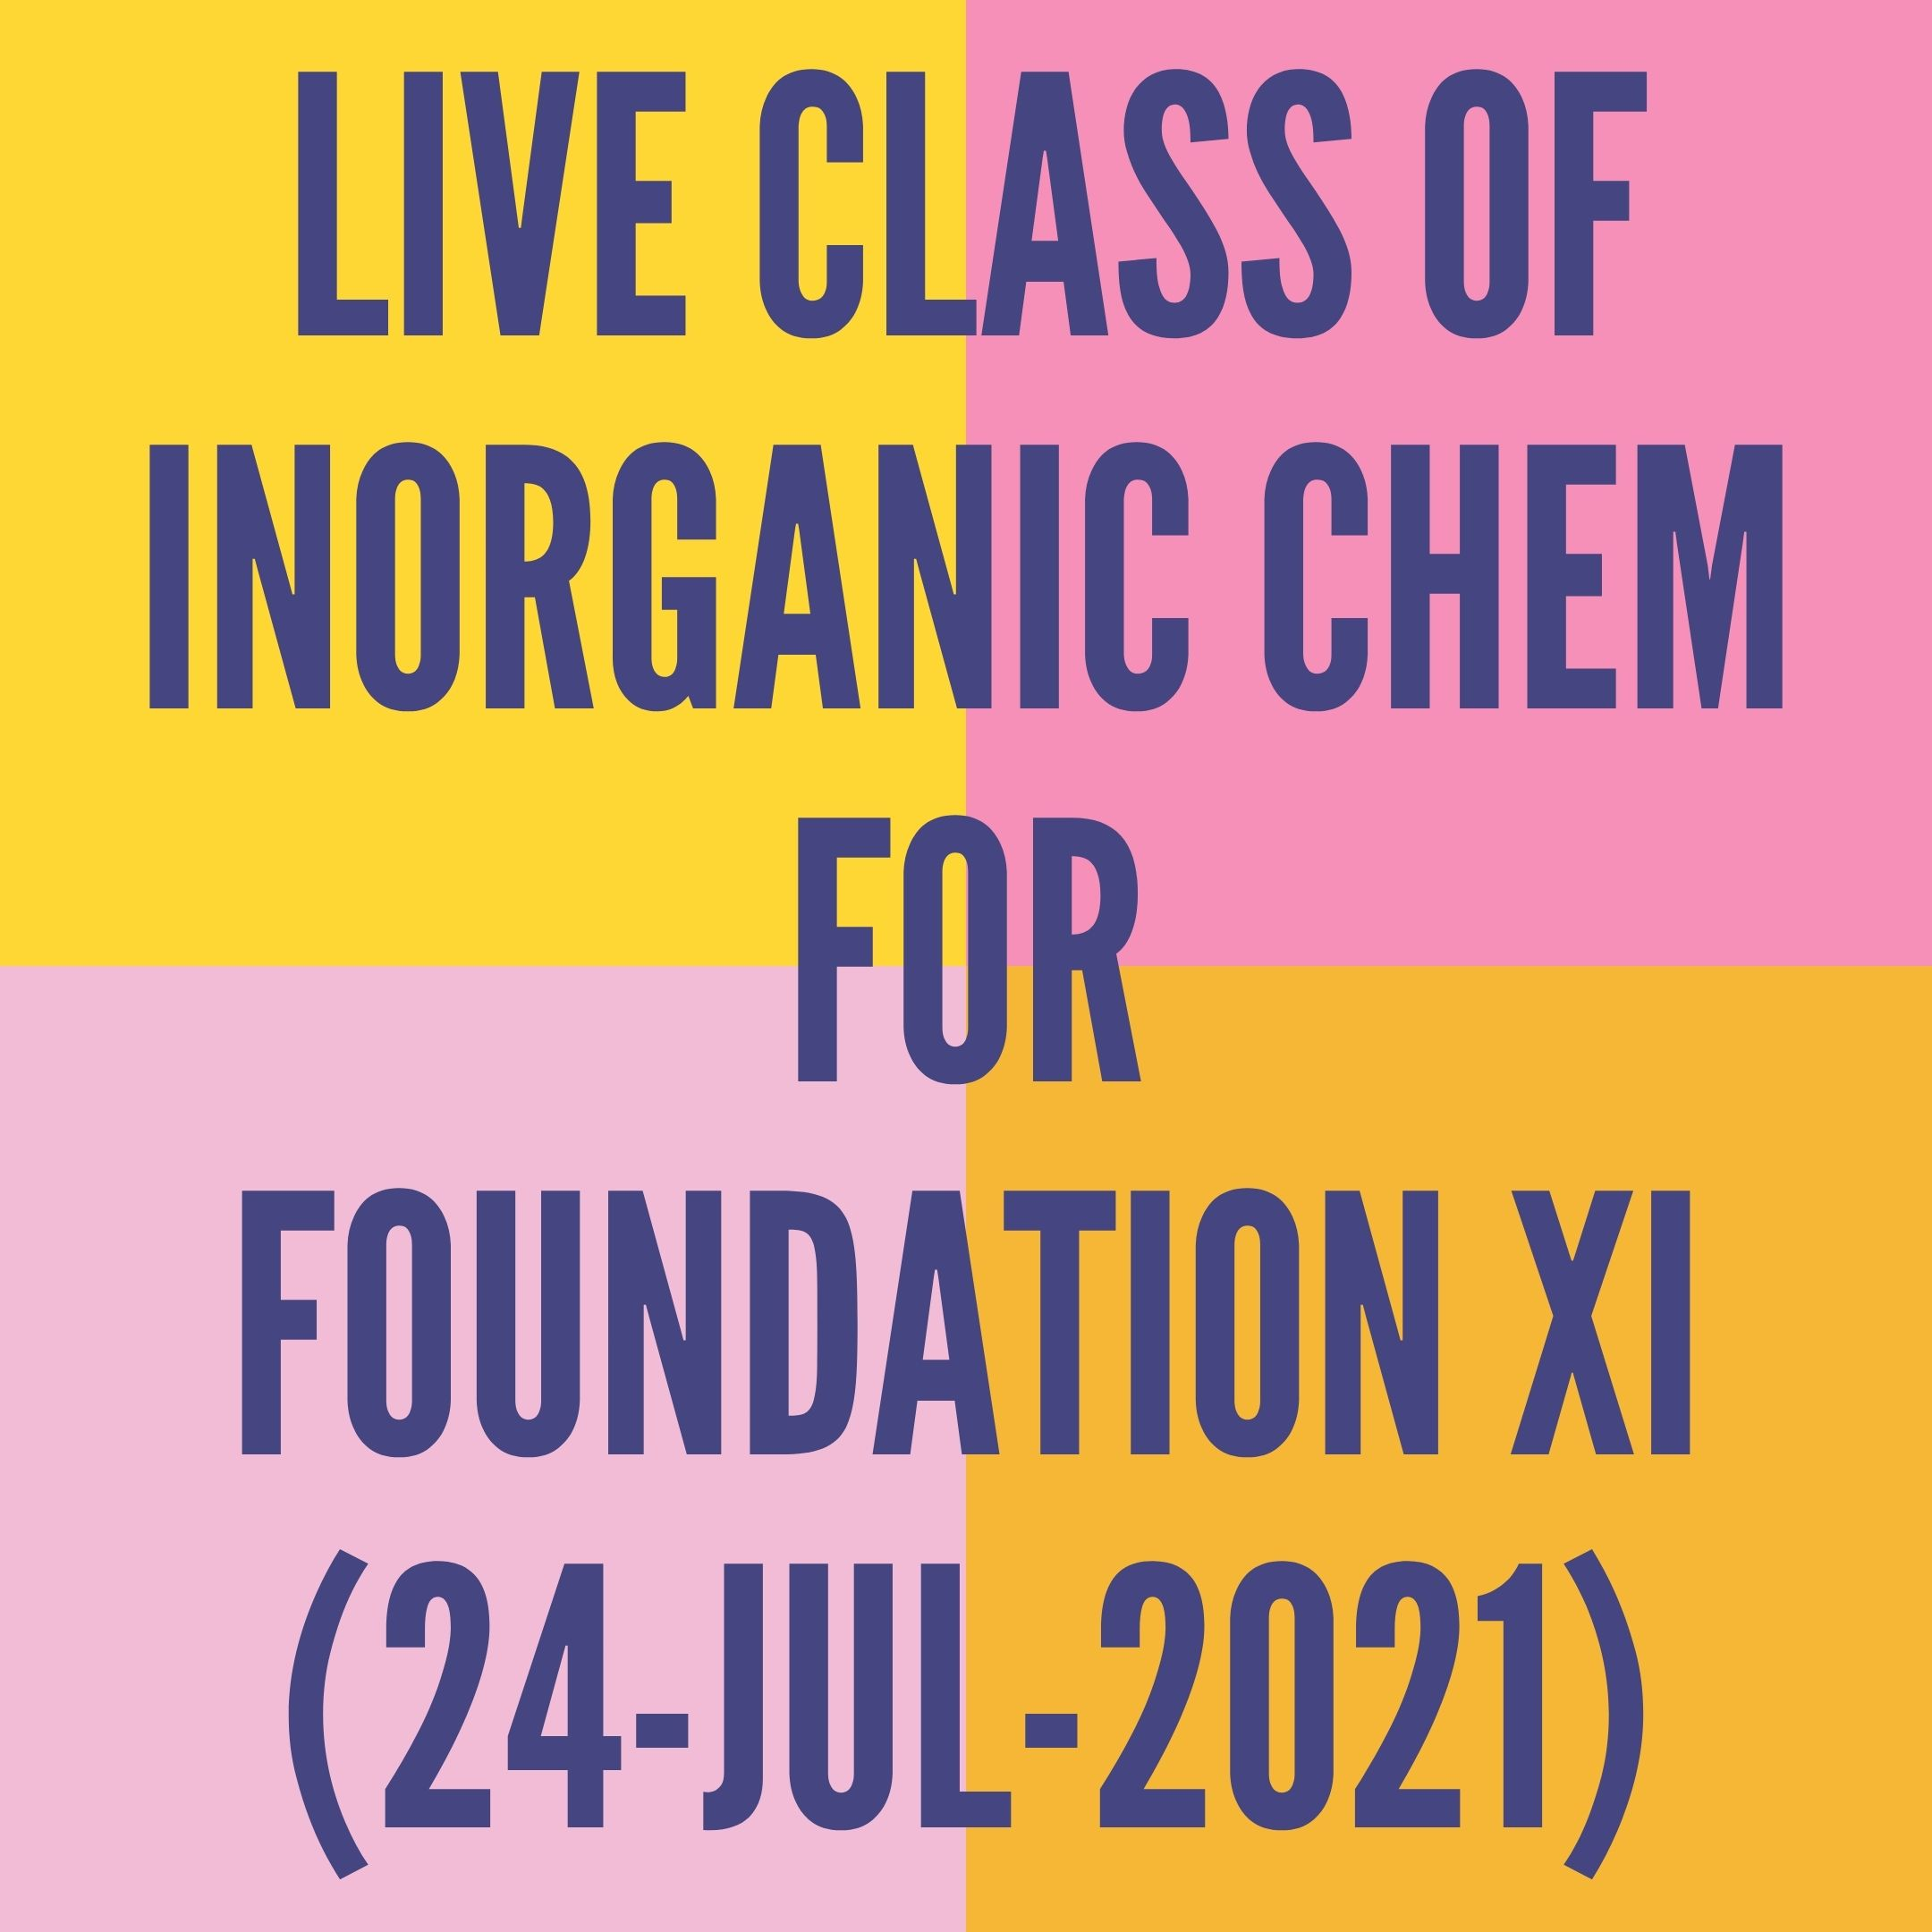 LIVE CLASS OF INORGANIC CHEMISTRY FOR FOUNDATION XI (24-JUL-2021) PERIODIC TABLE